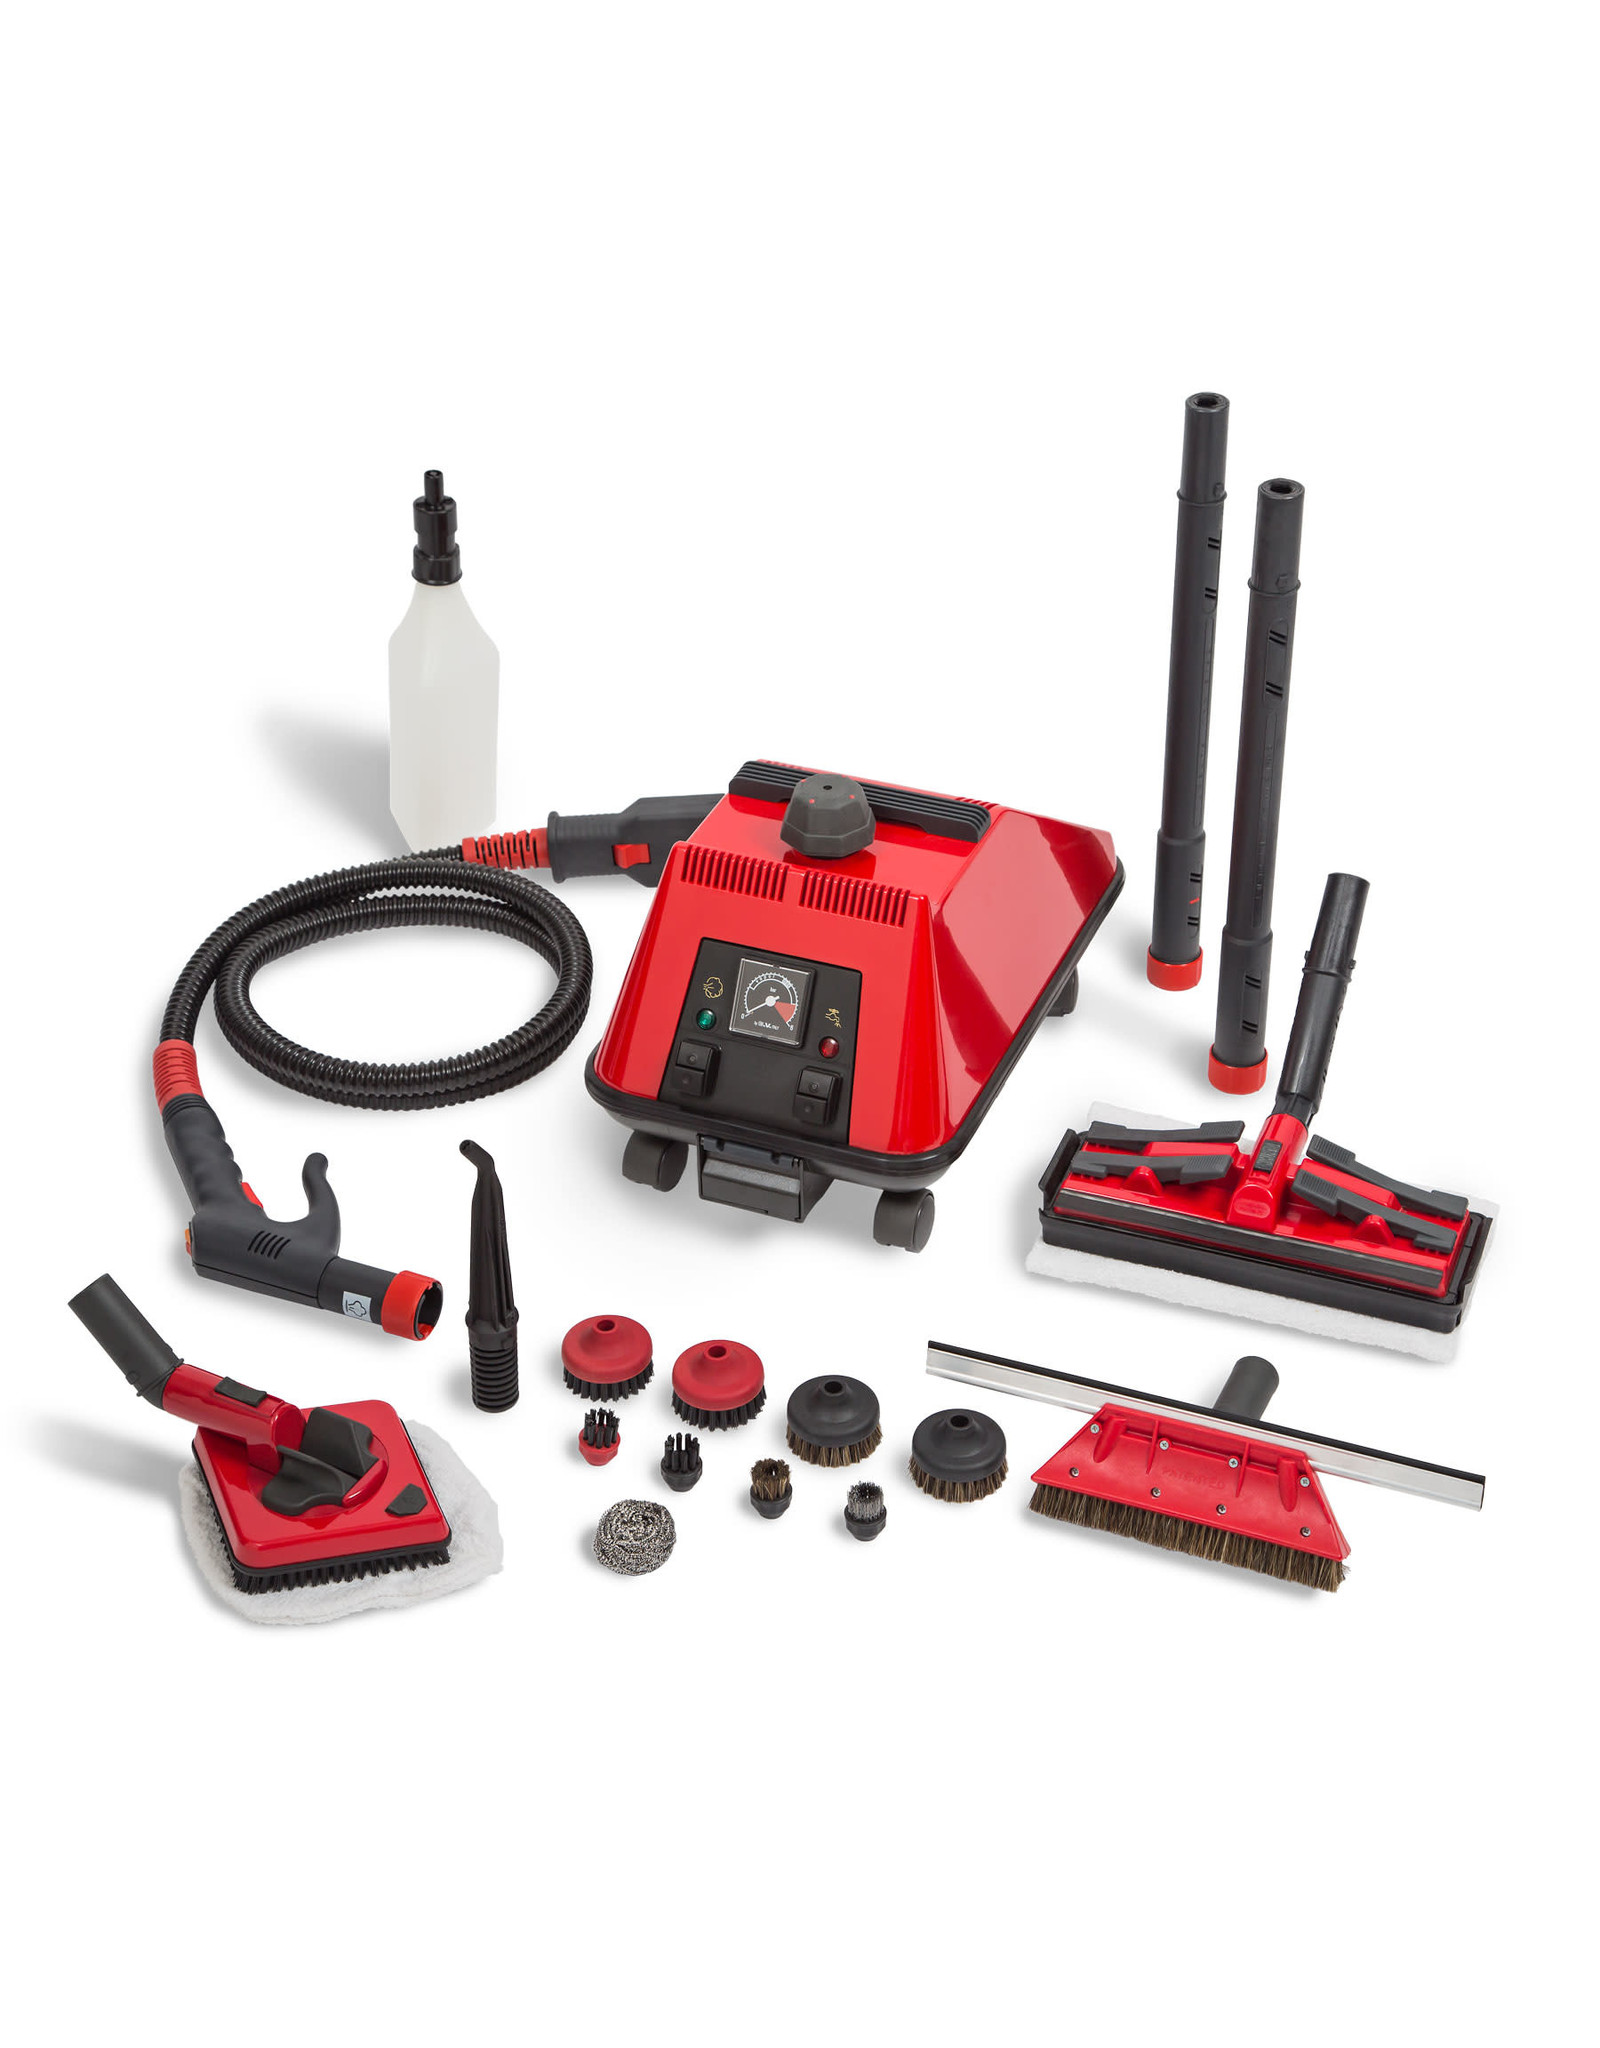 Sargent Steam Cleaners BRZ2 SARGENT STEAM CLEANER DELUXE PACKAGE